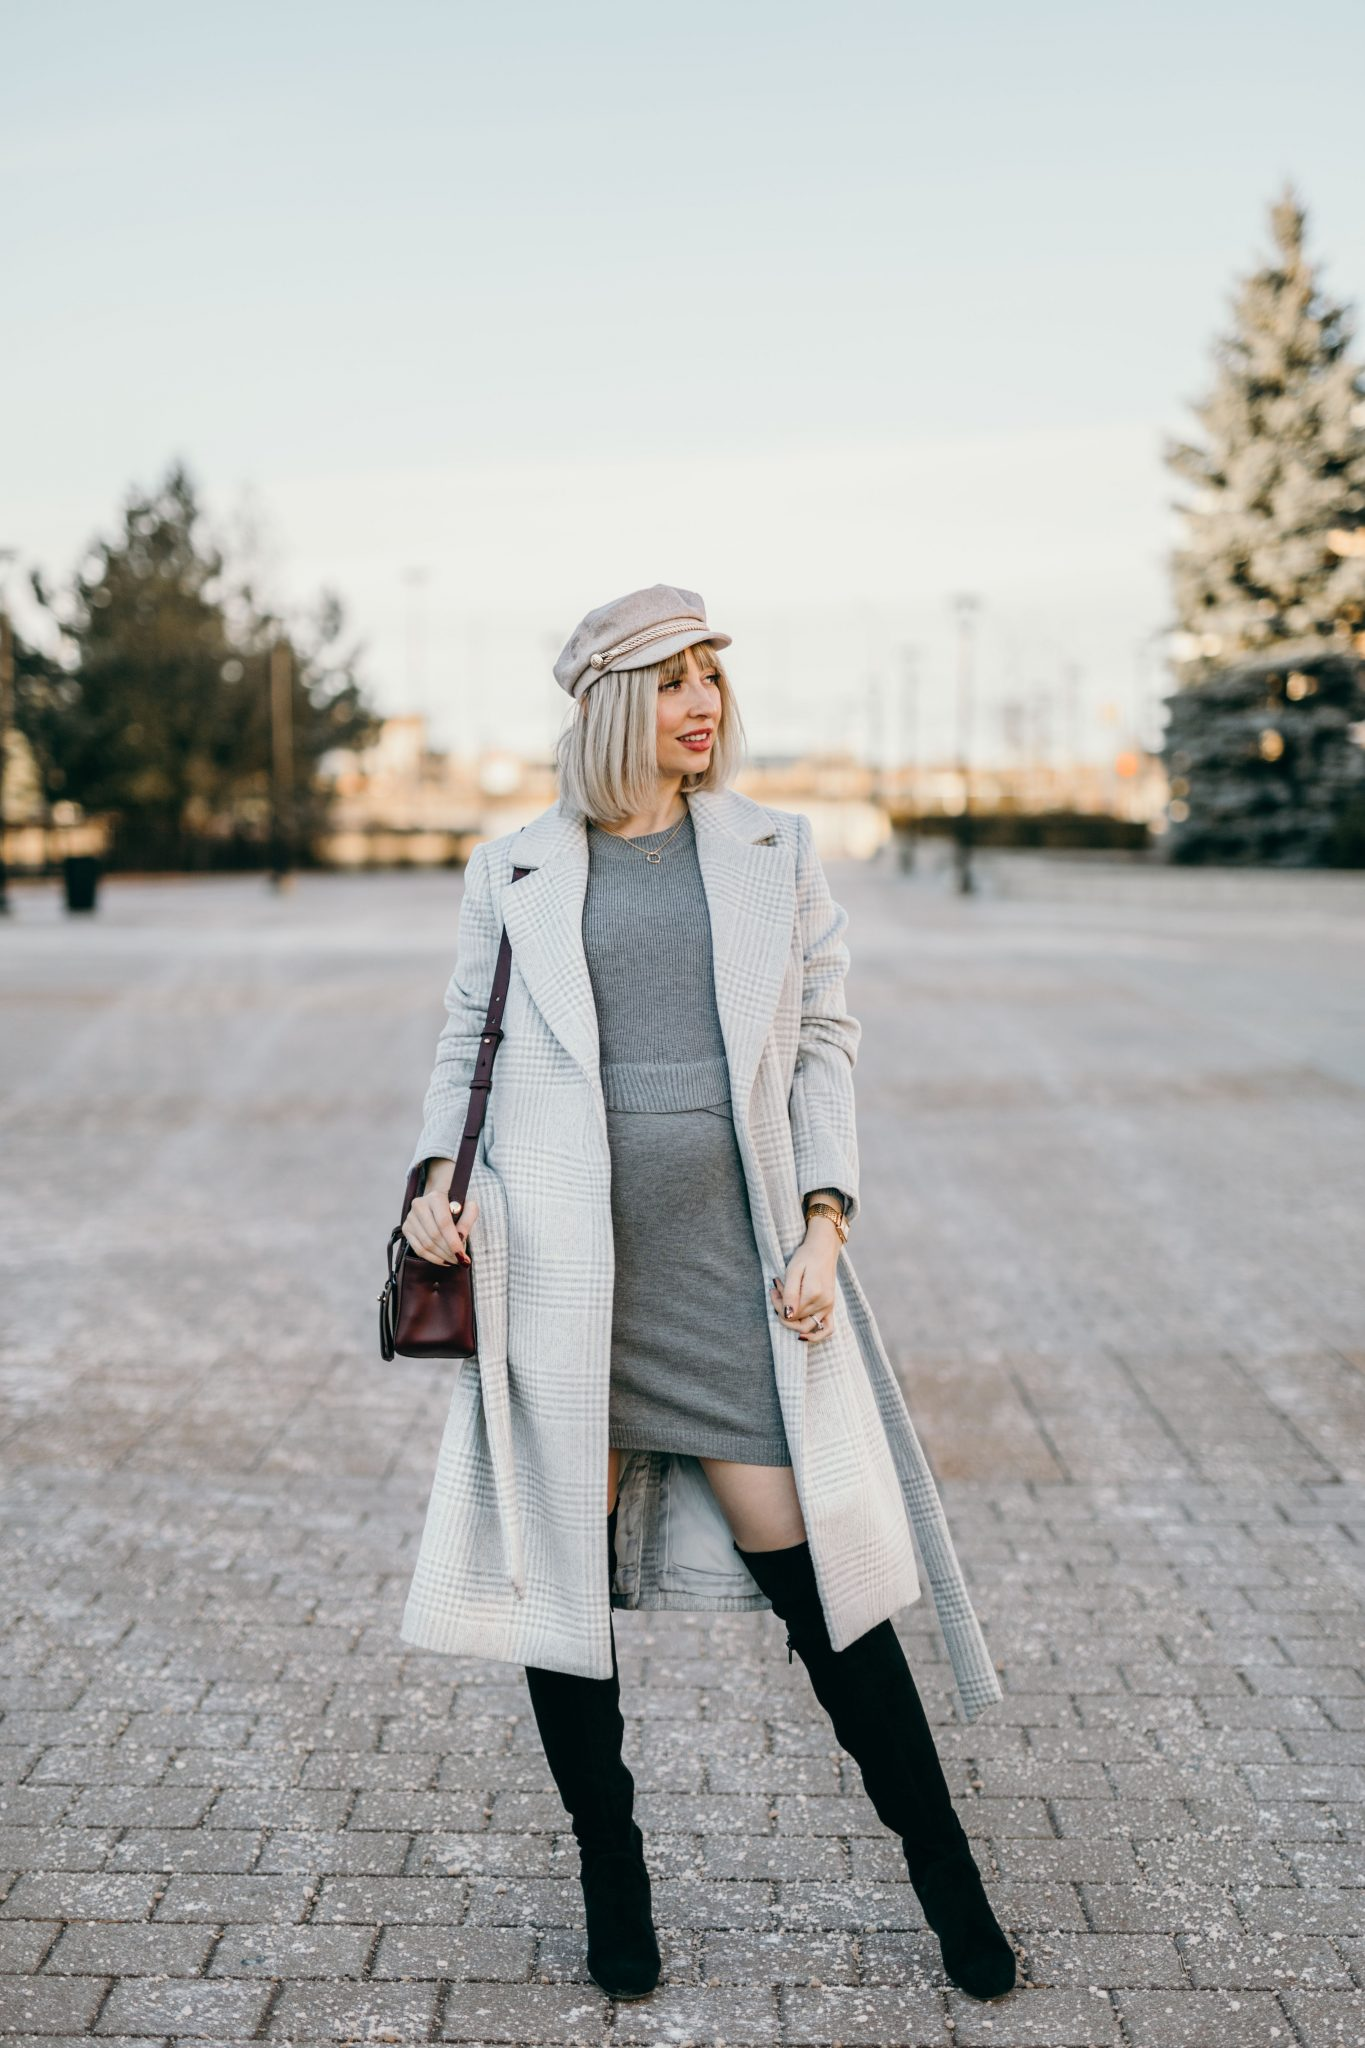 Winter Pregnancy Outfit wool coat & knit dress 2